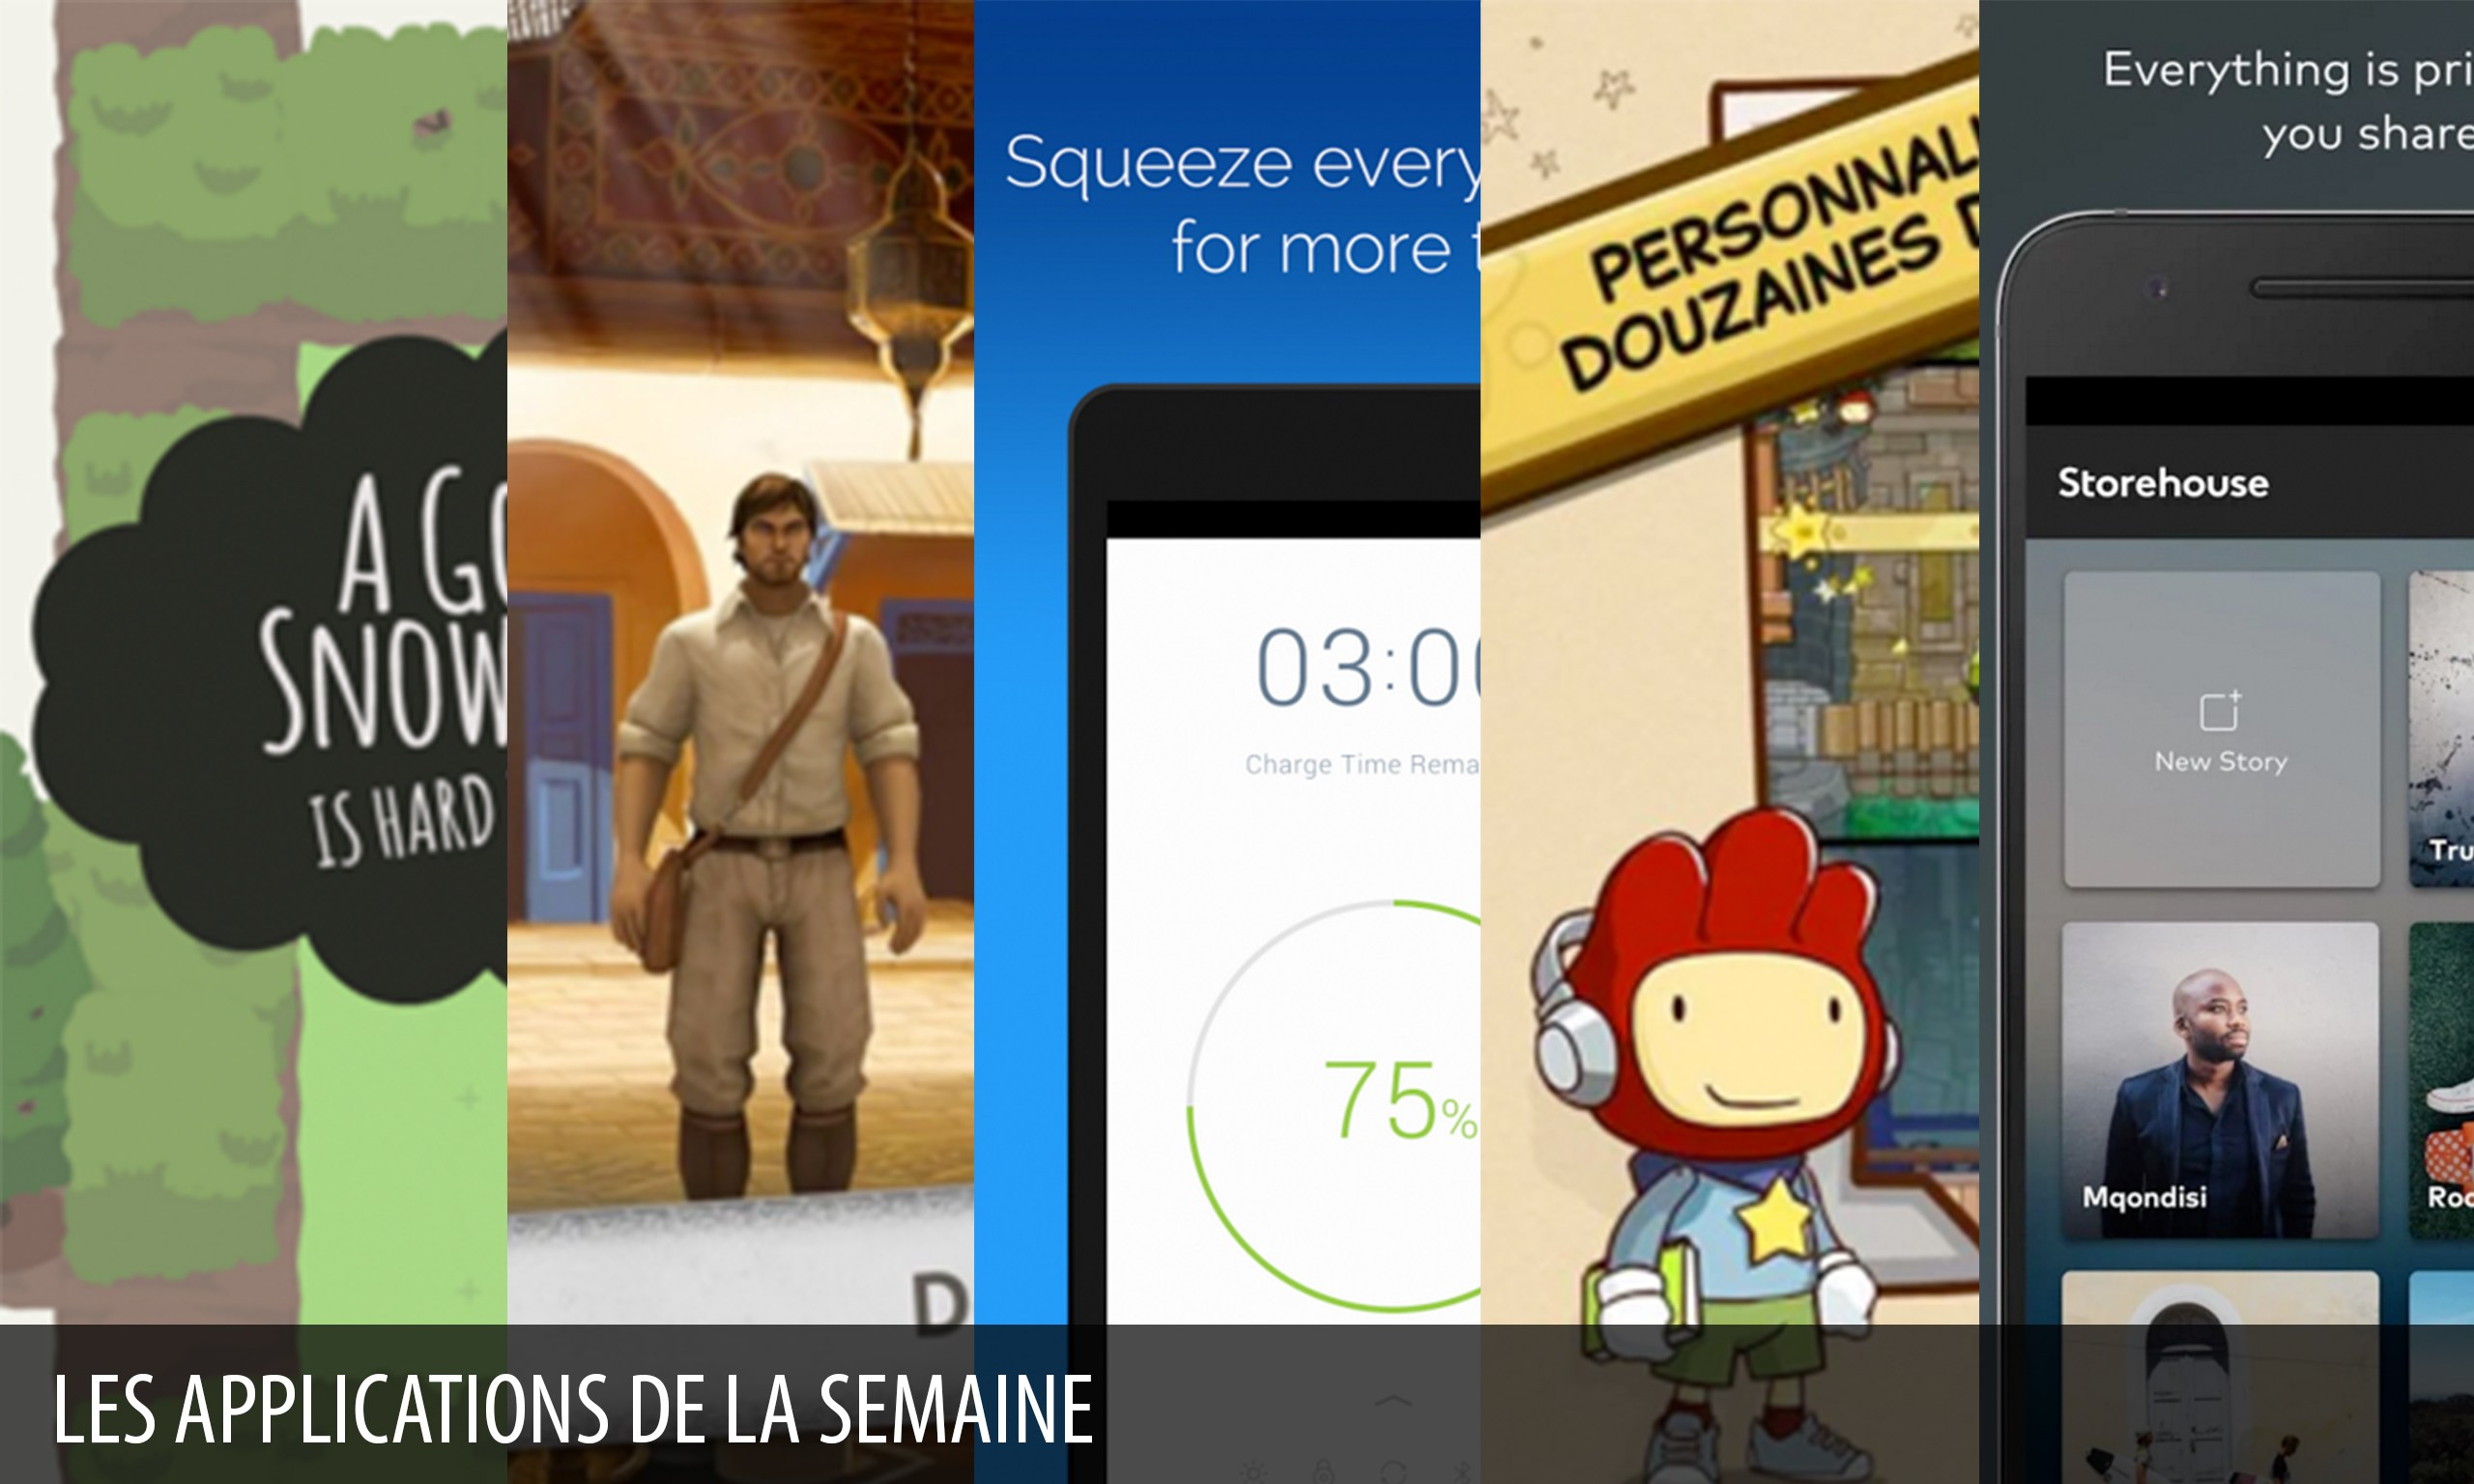 Les apps de la semaine : Scribblenauts Unlimited, A Good Snowman…